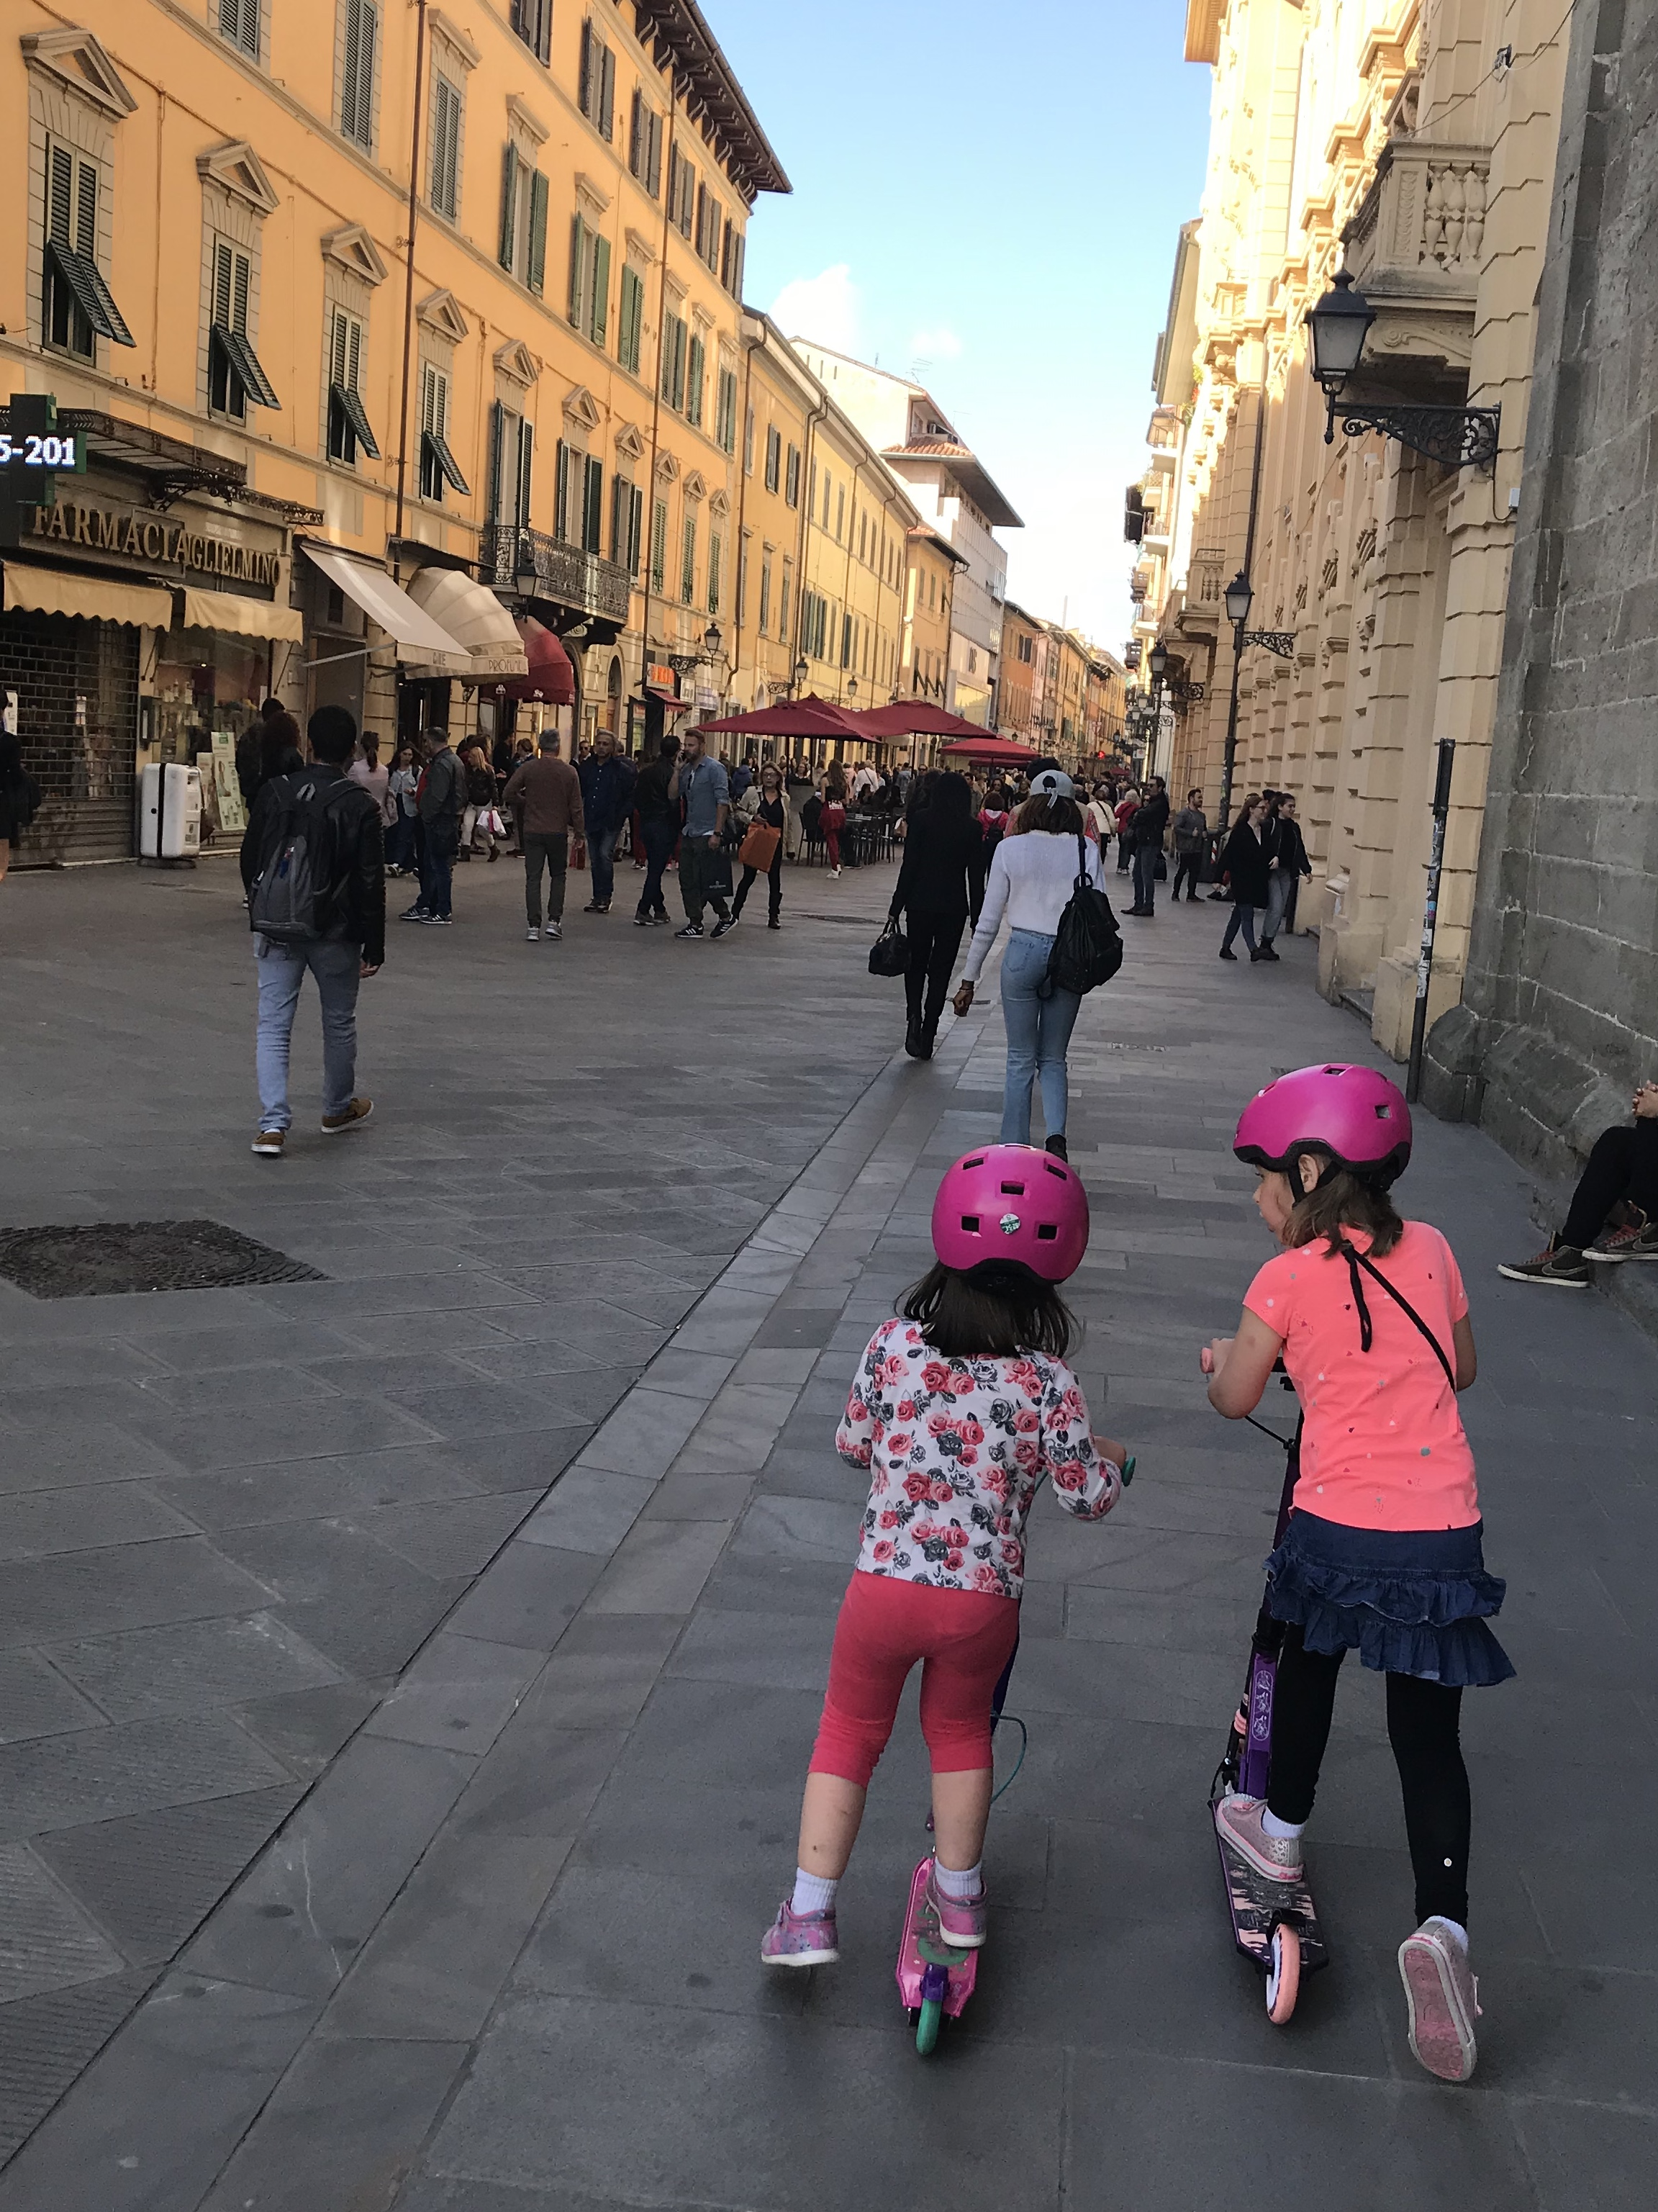 Our little ones riding their scooters in Pisa